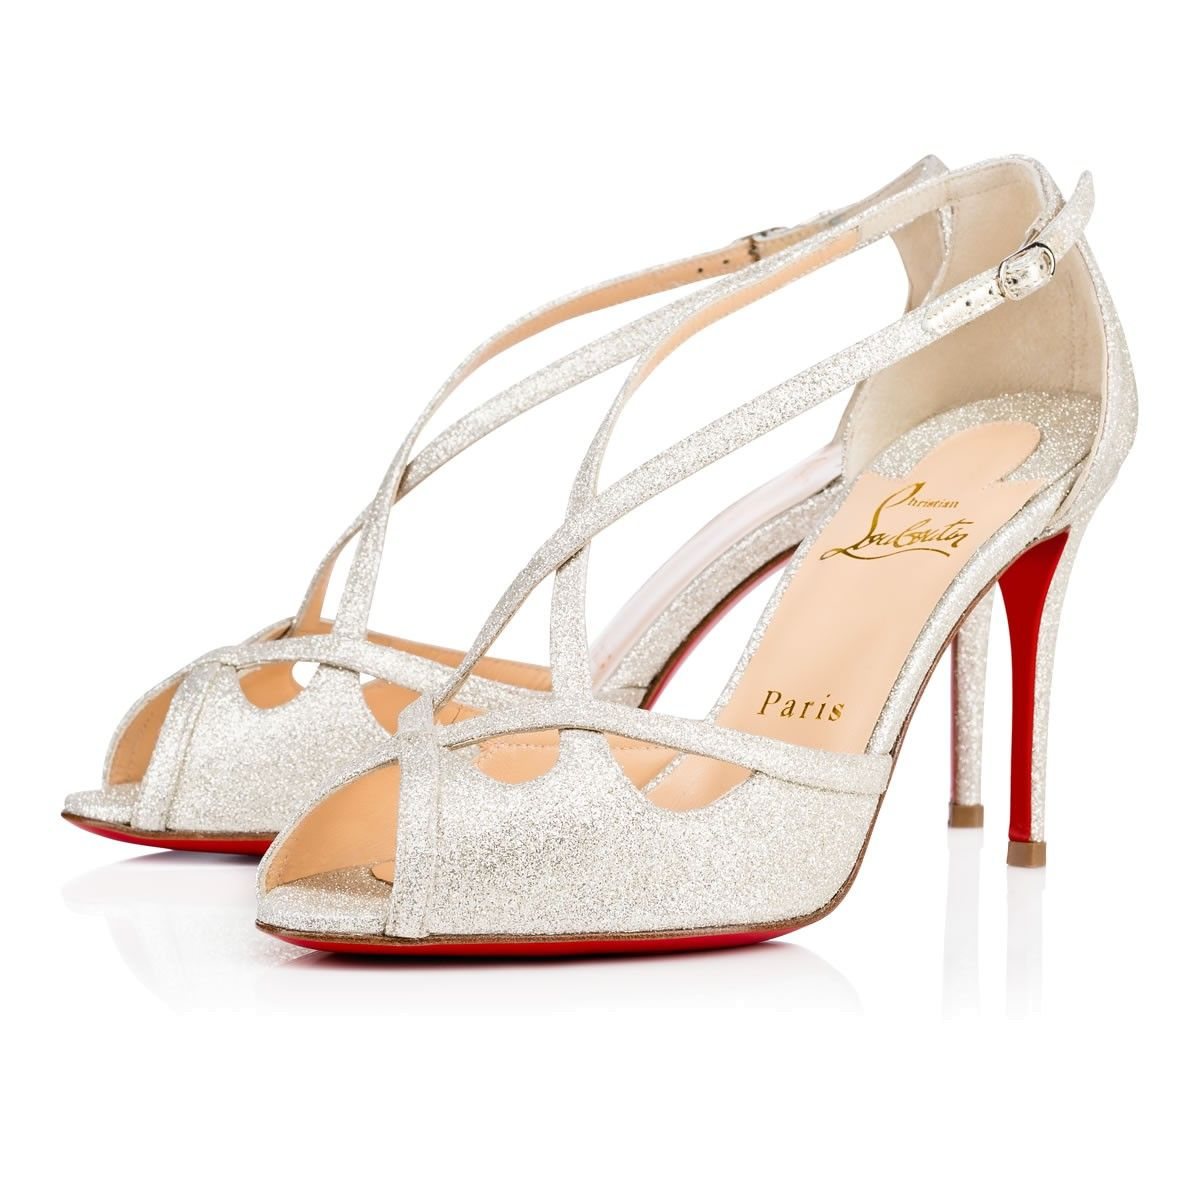 305038a0790c CHRISTIAN LOUBOUTIN Madalena 85 Glitter Mini Glitter 85 Ivory Glitter - Women  Shoes - Christian Louboutin.  christianlouboutin  shoes